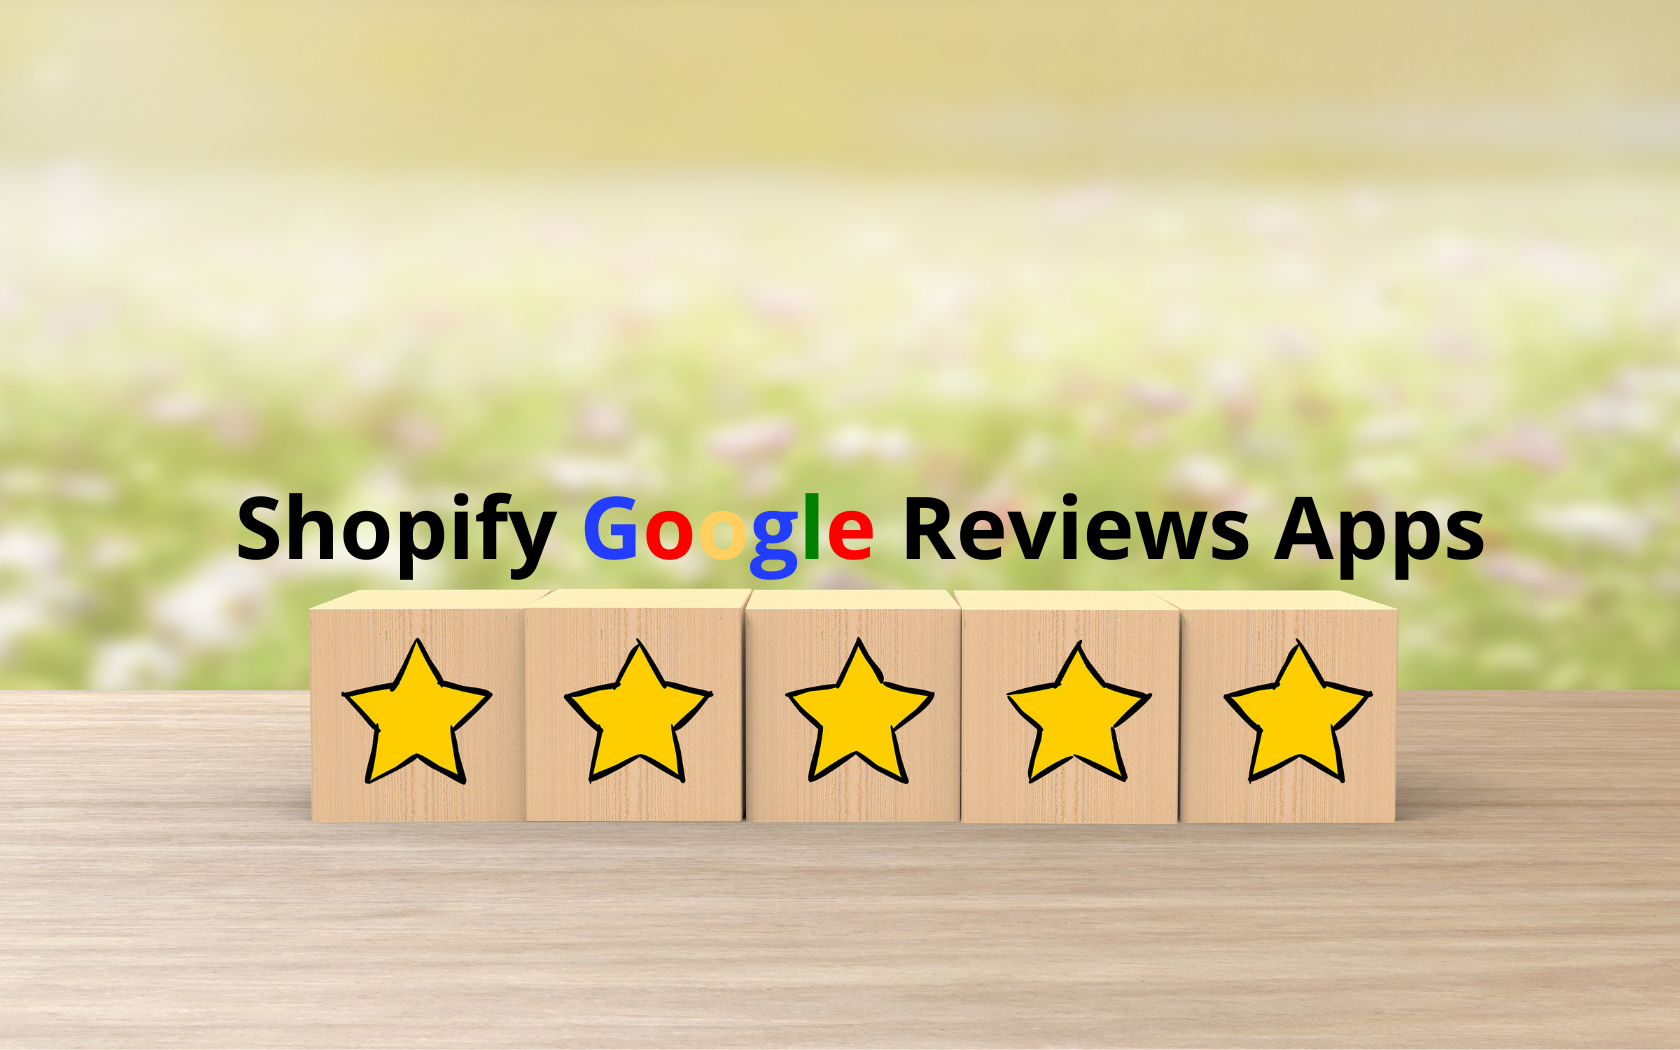 Shopify Google Reviews Apps